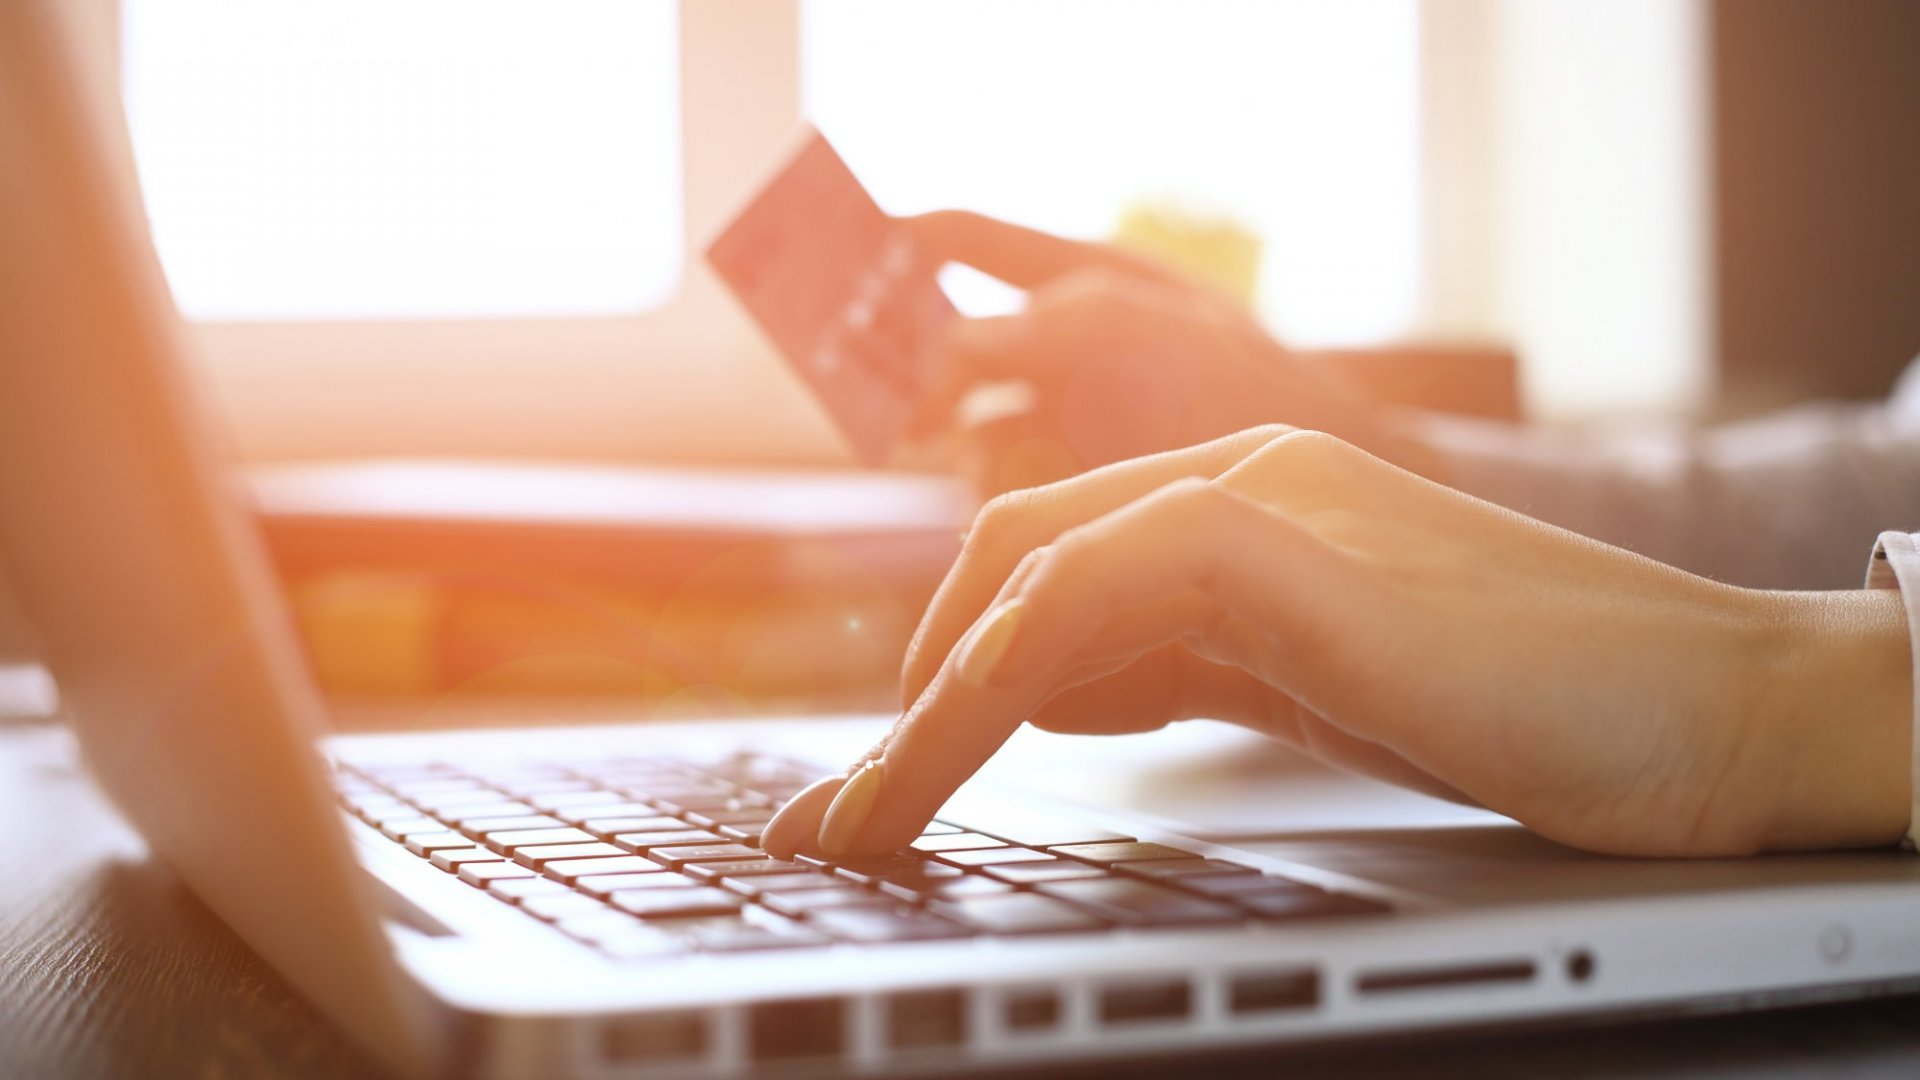 Why Fulfillment Is the True Key to Growing and Scaling an E-Commerce Business